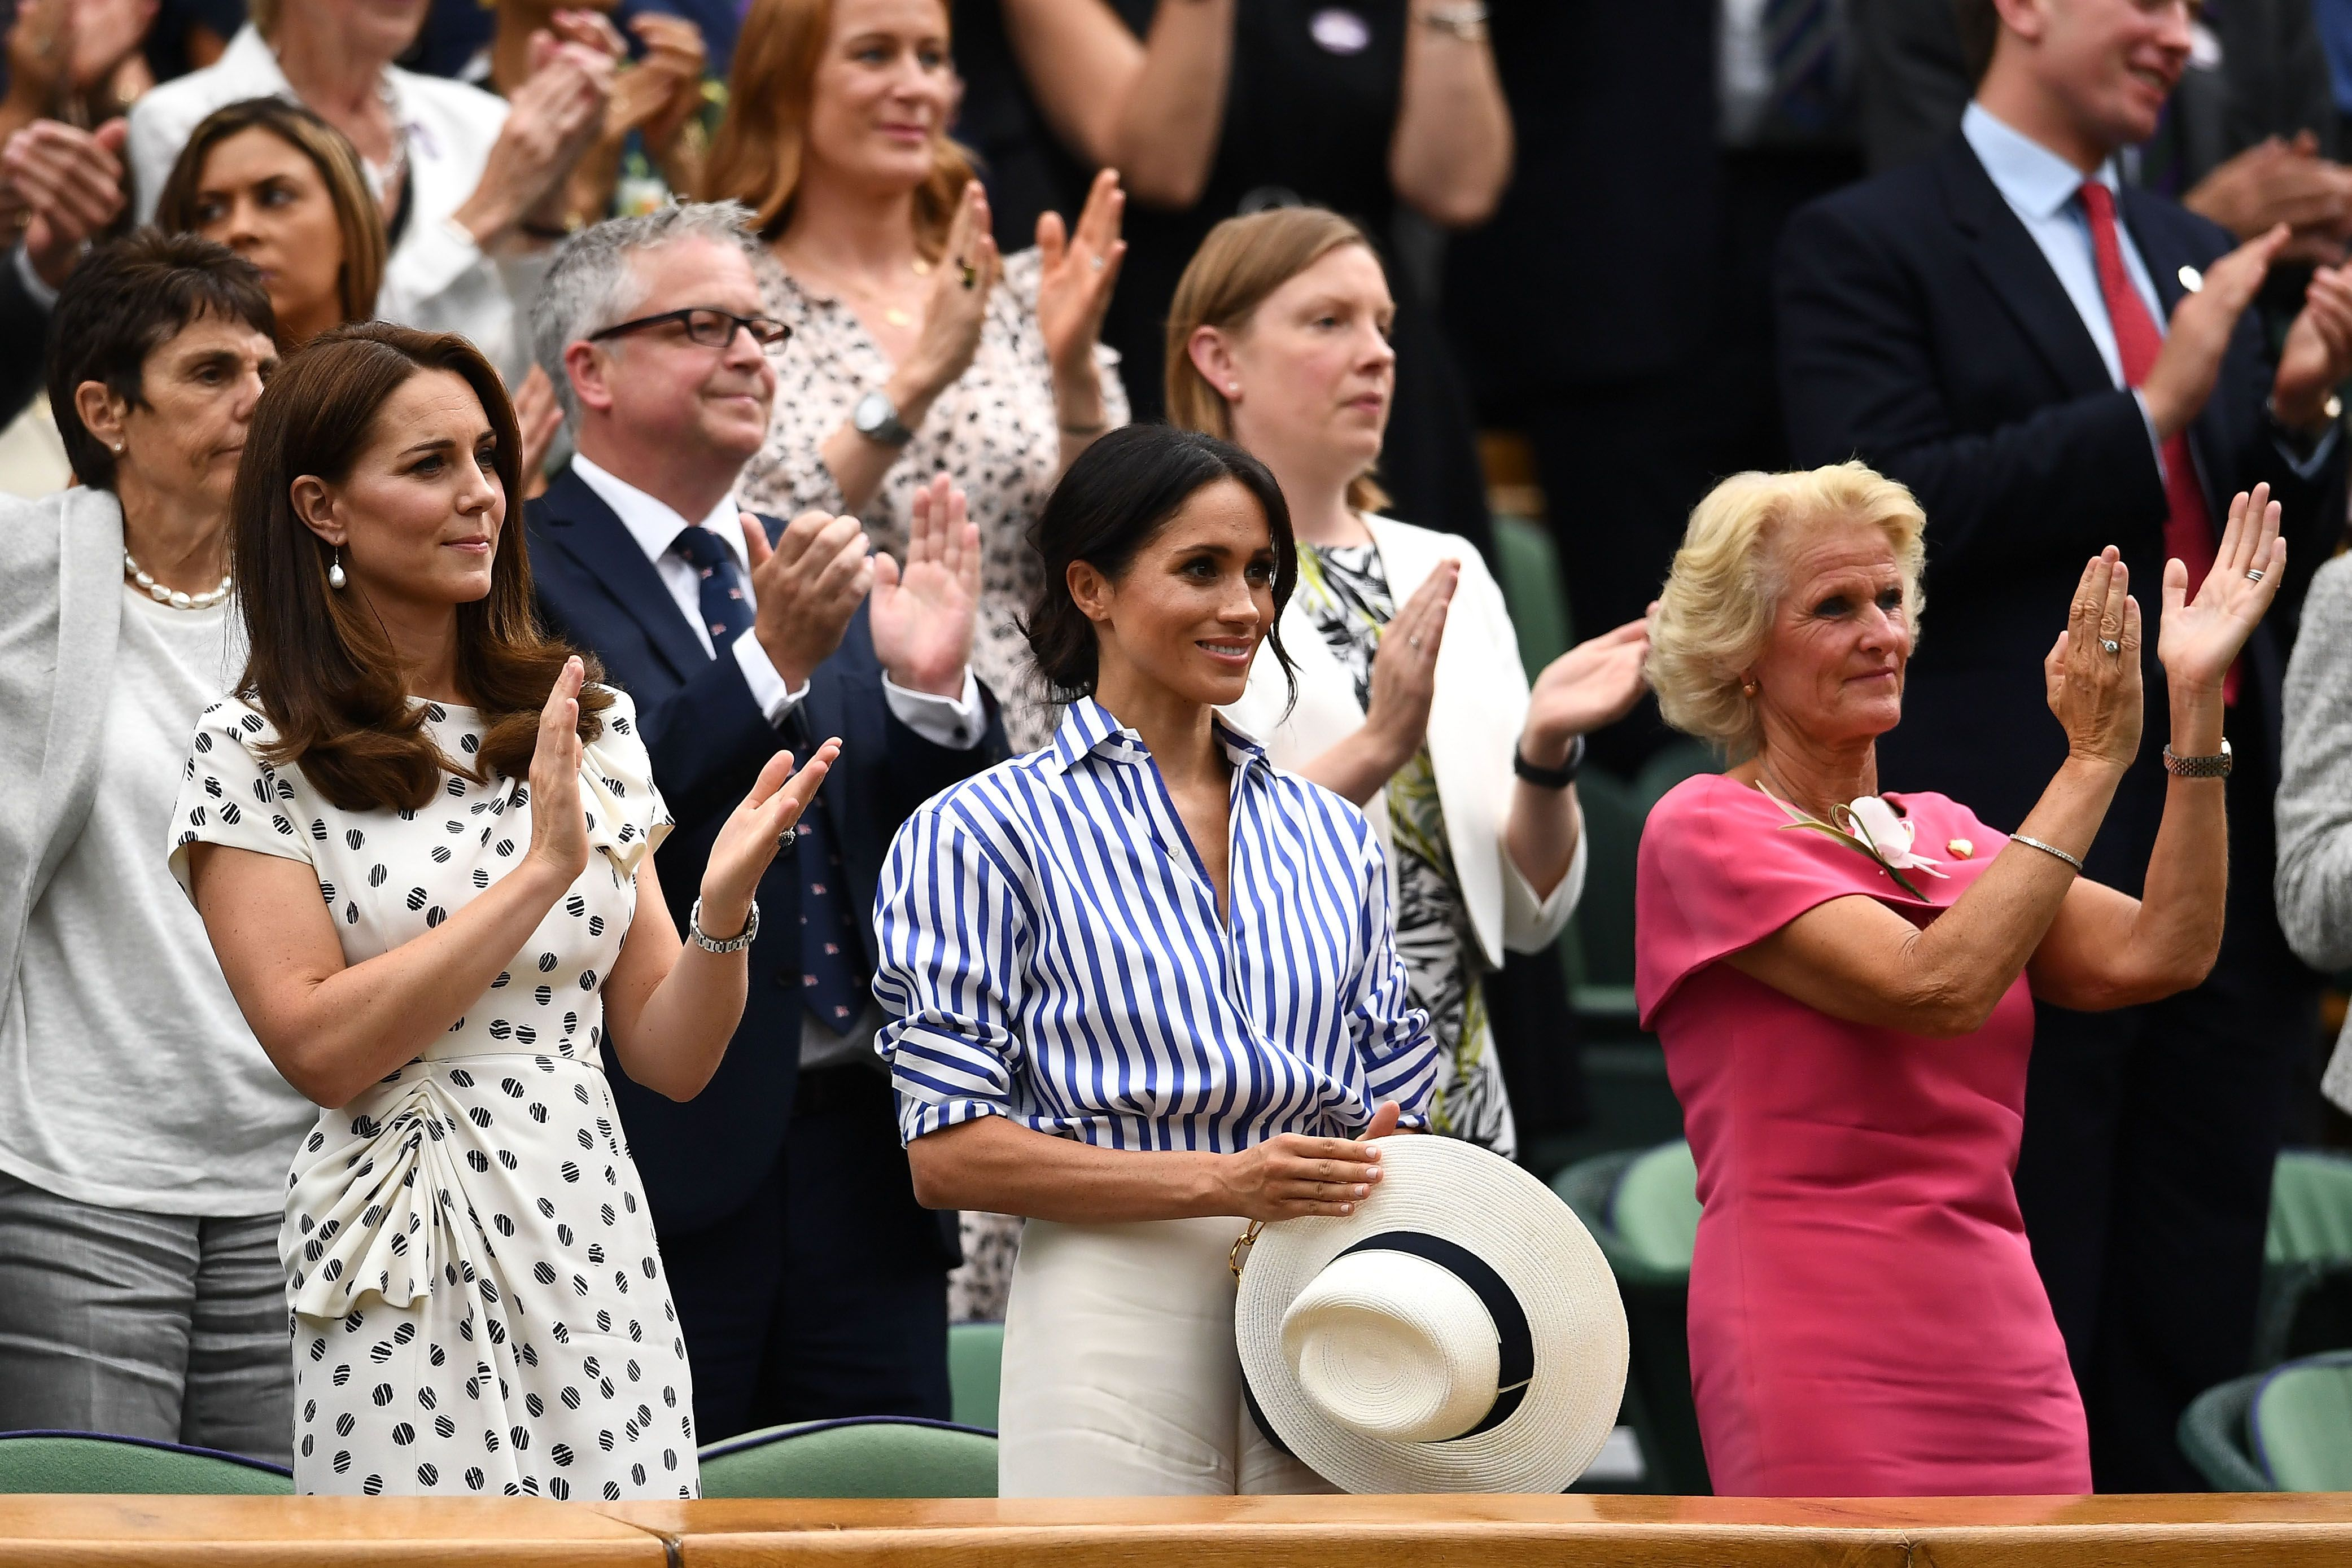 Meghan and Kate. Photo by Clive Mason / Getty Images